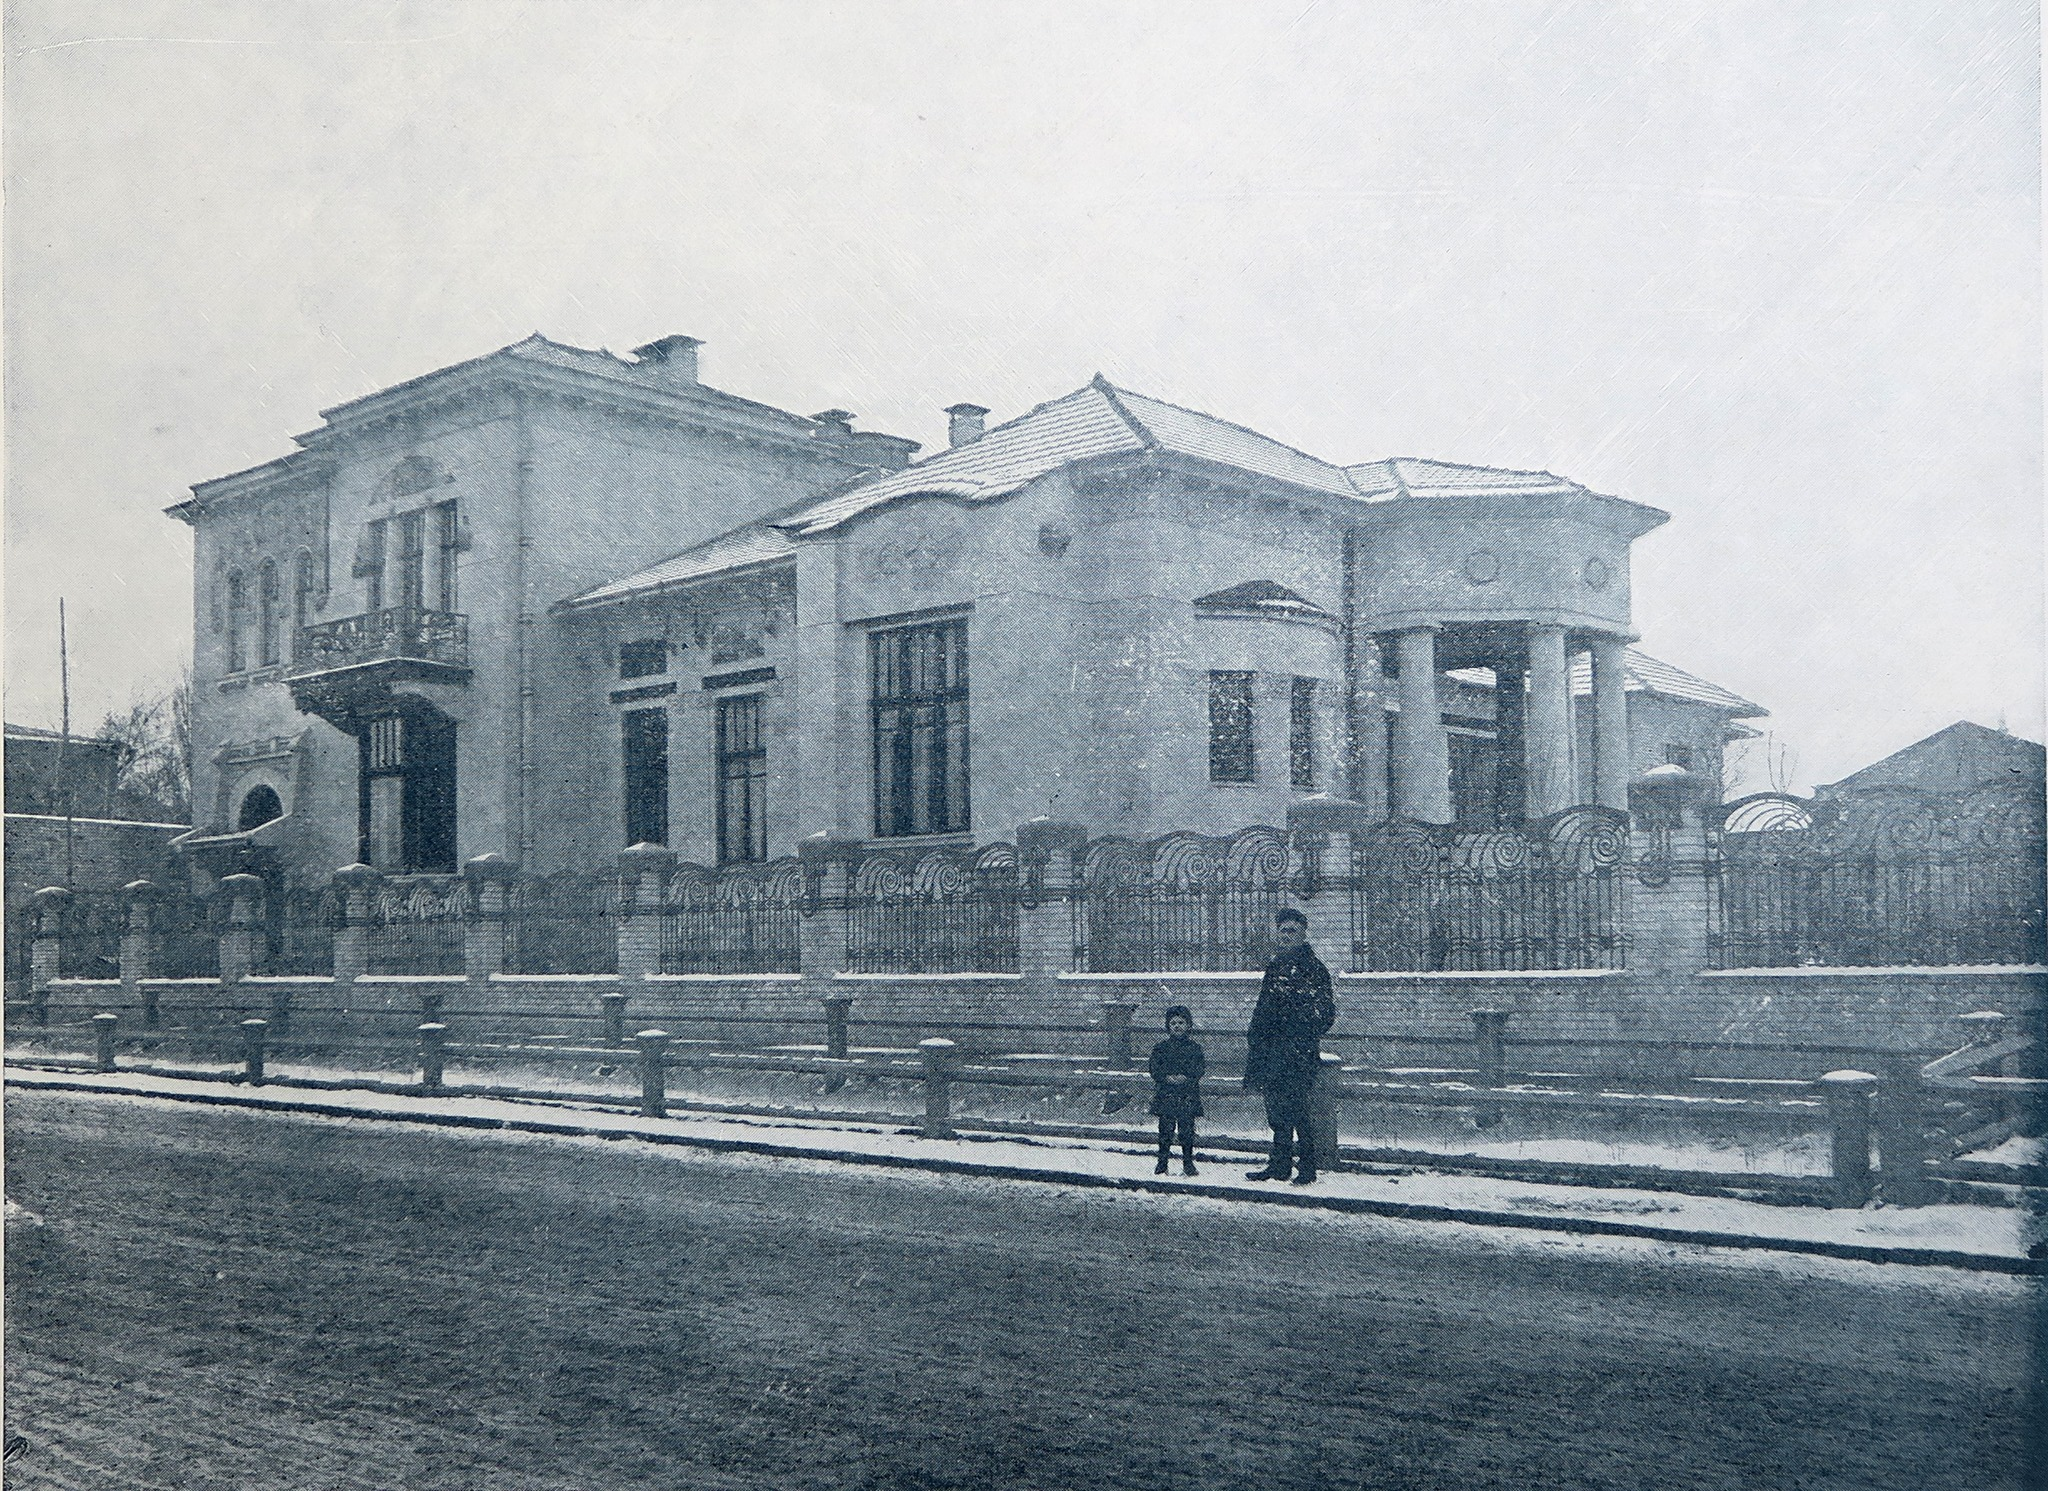 Reineke house in Saratov circa 1910. Courtesy of the Saratov Project.